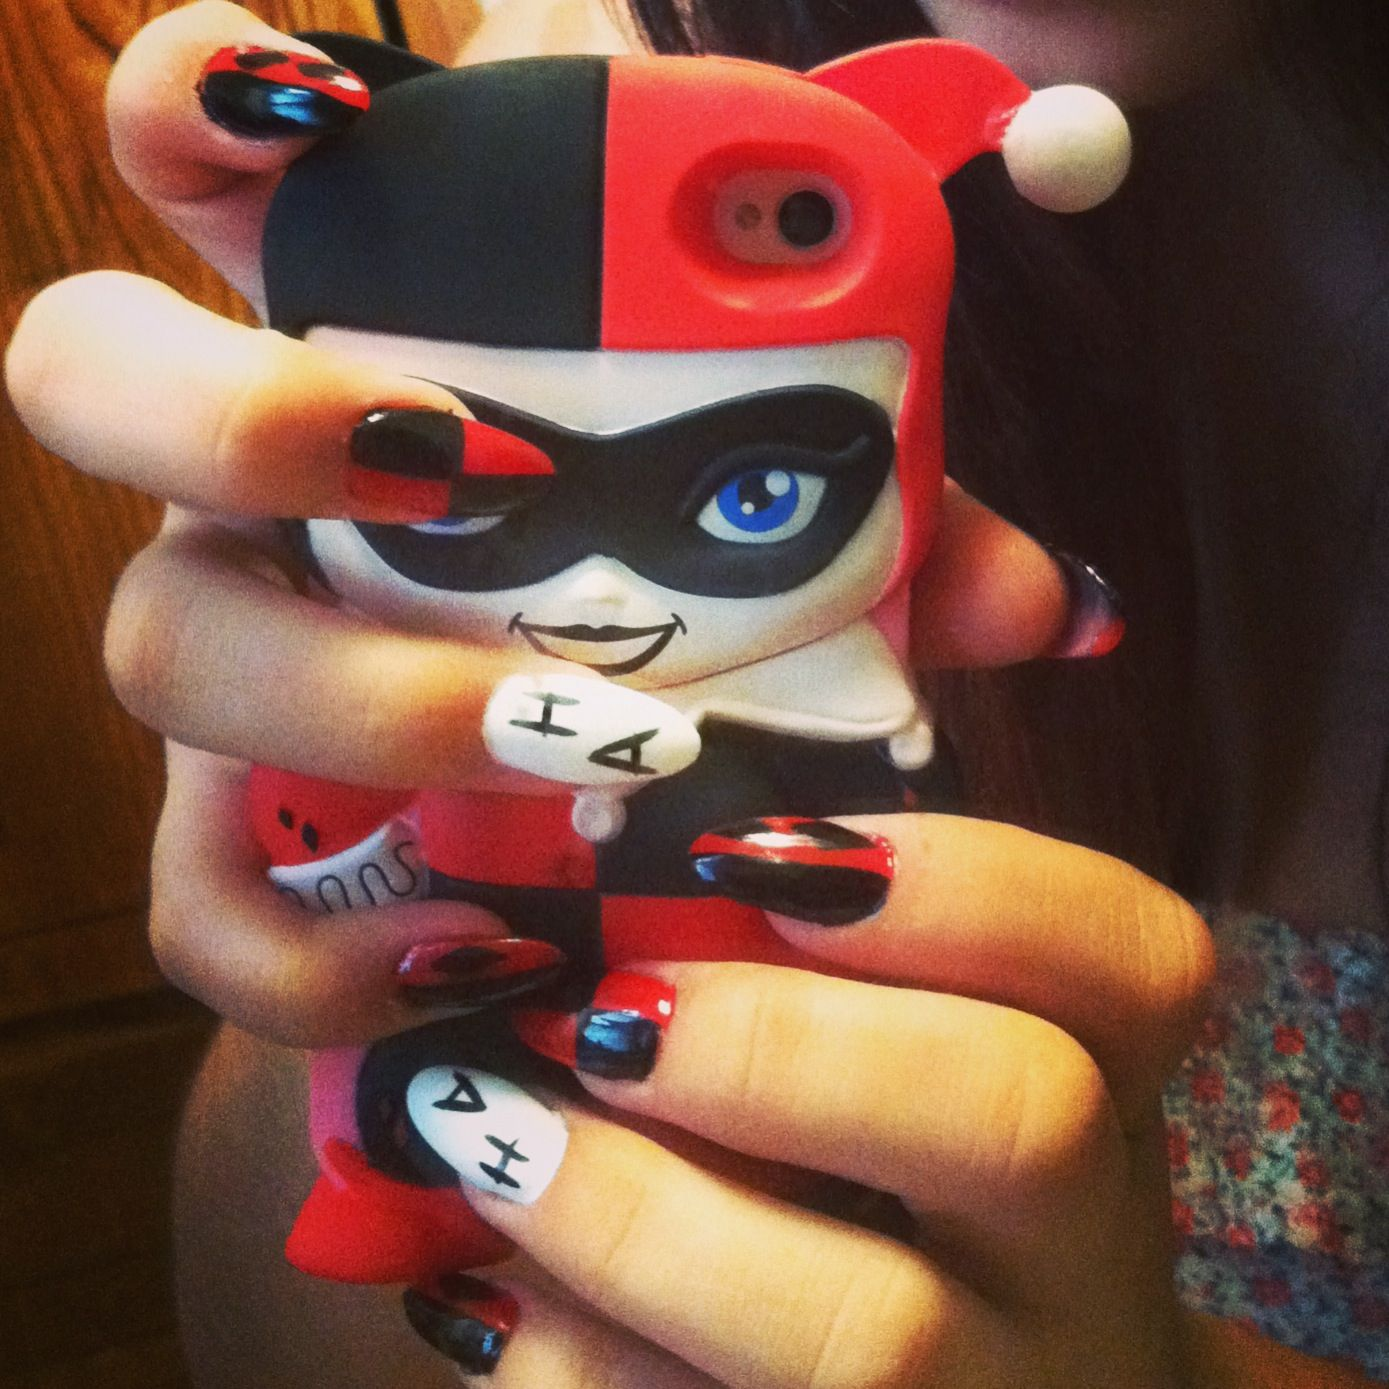 Harley Quinn stiletto nails | Nail art | Pinterest